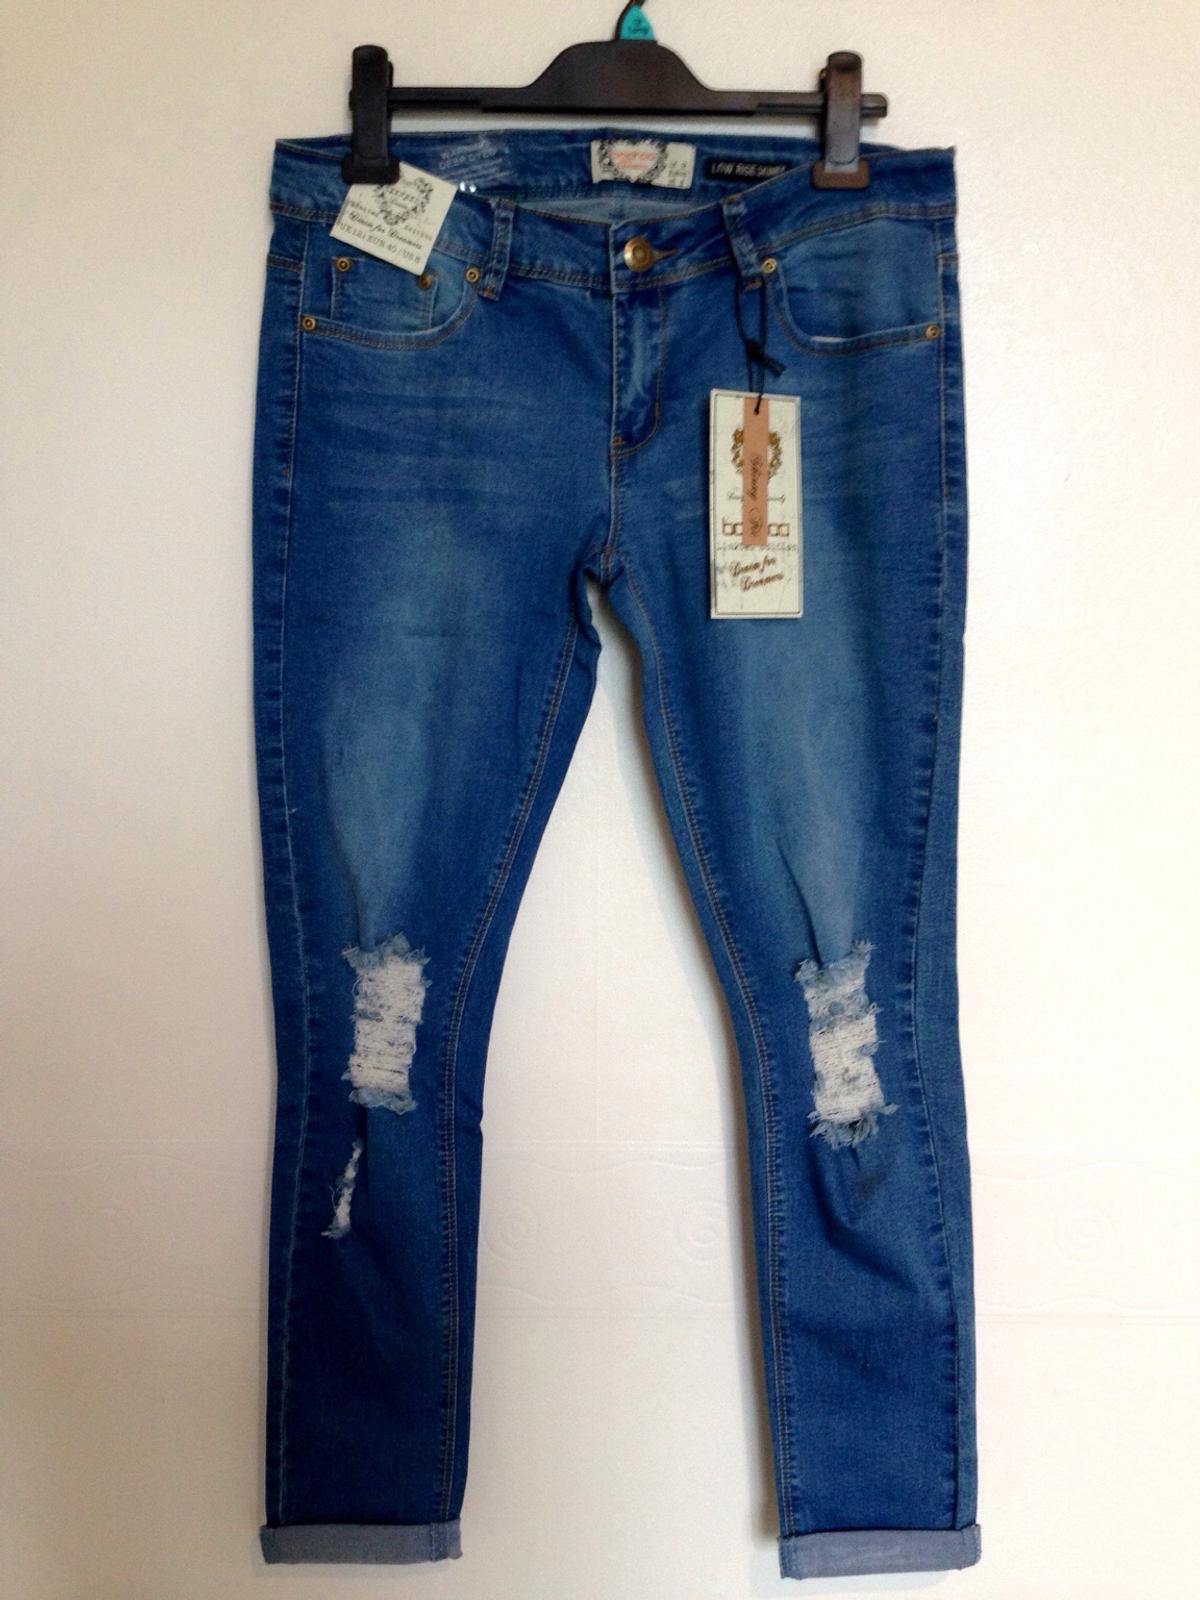 1d9900f1b14 New Loren Distressed Rip Knee Skinny Jeans in Bolton for £15.00 for ...